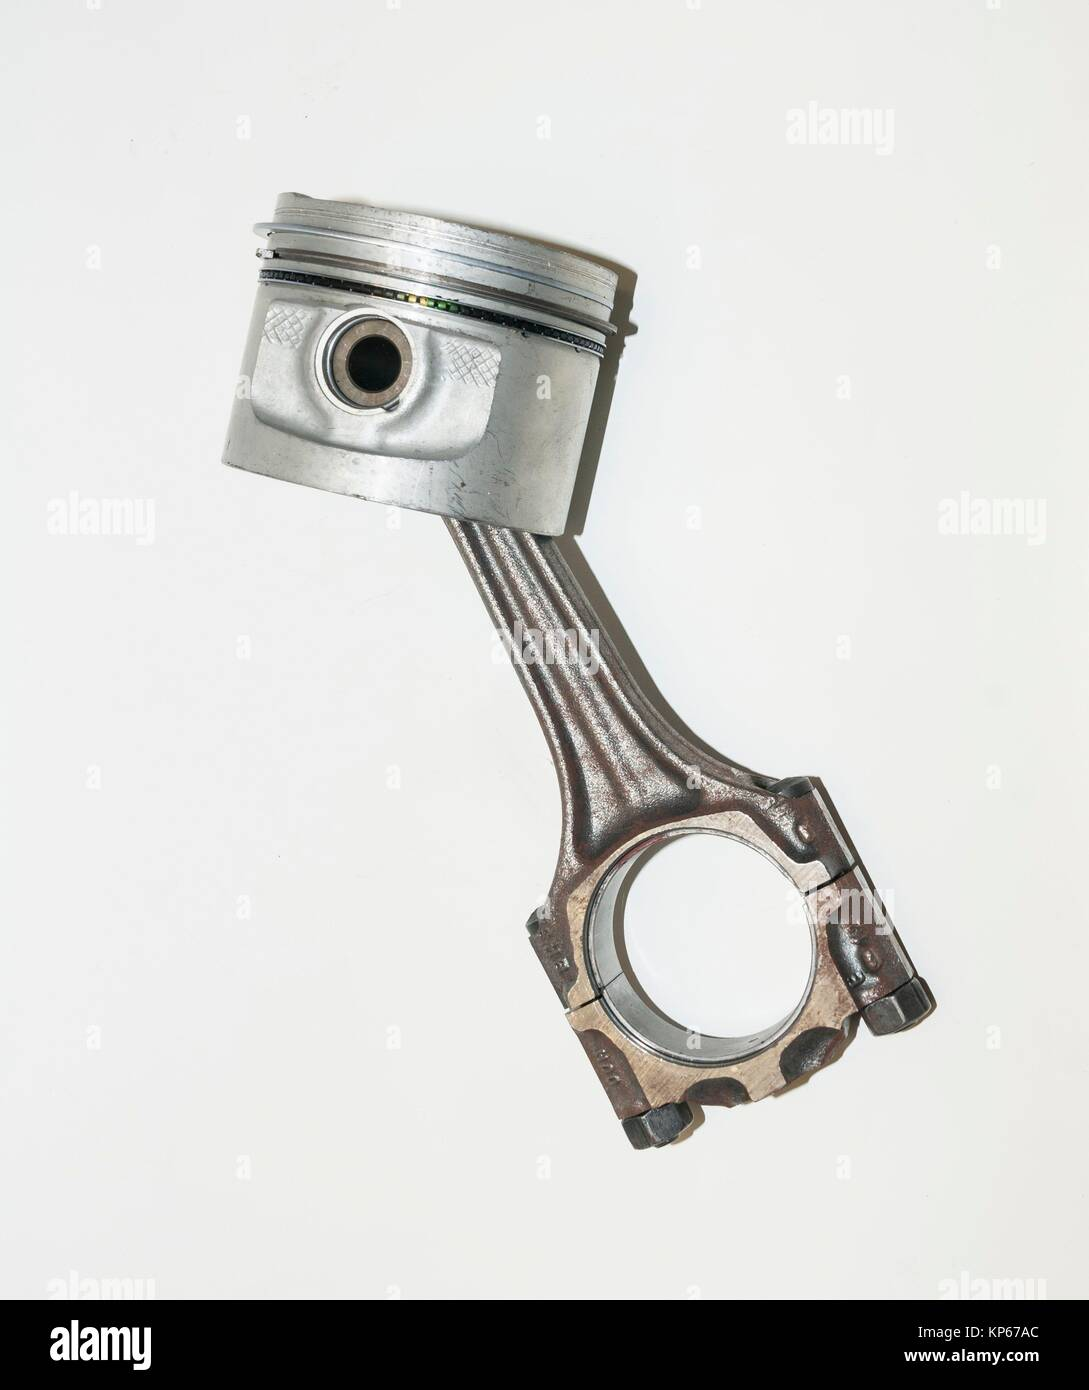 Piston and connecting rod, part of automotive engine - Stock Image